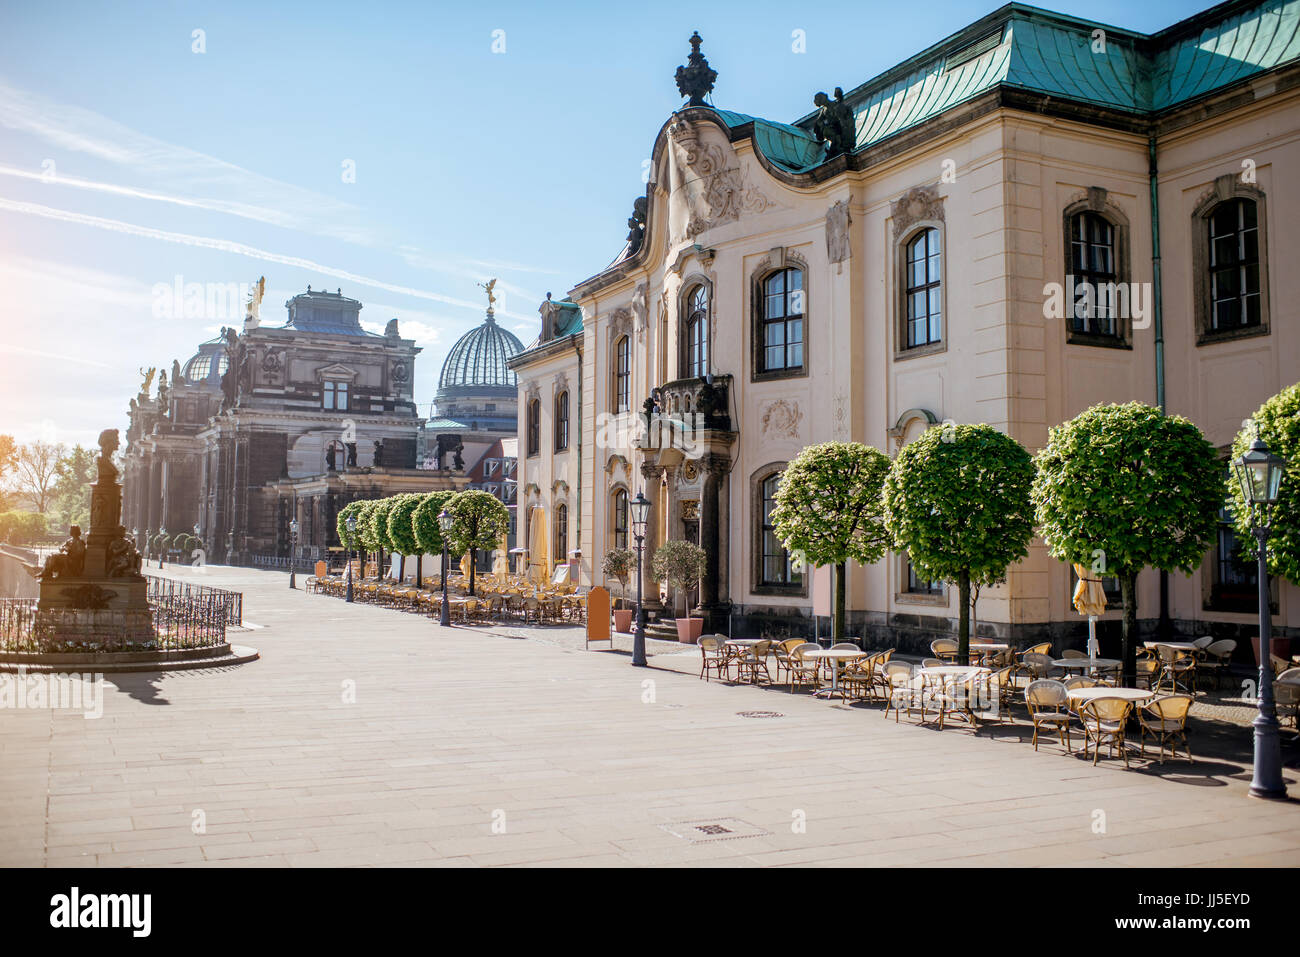 Dresden city in Germany - Stock Image